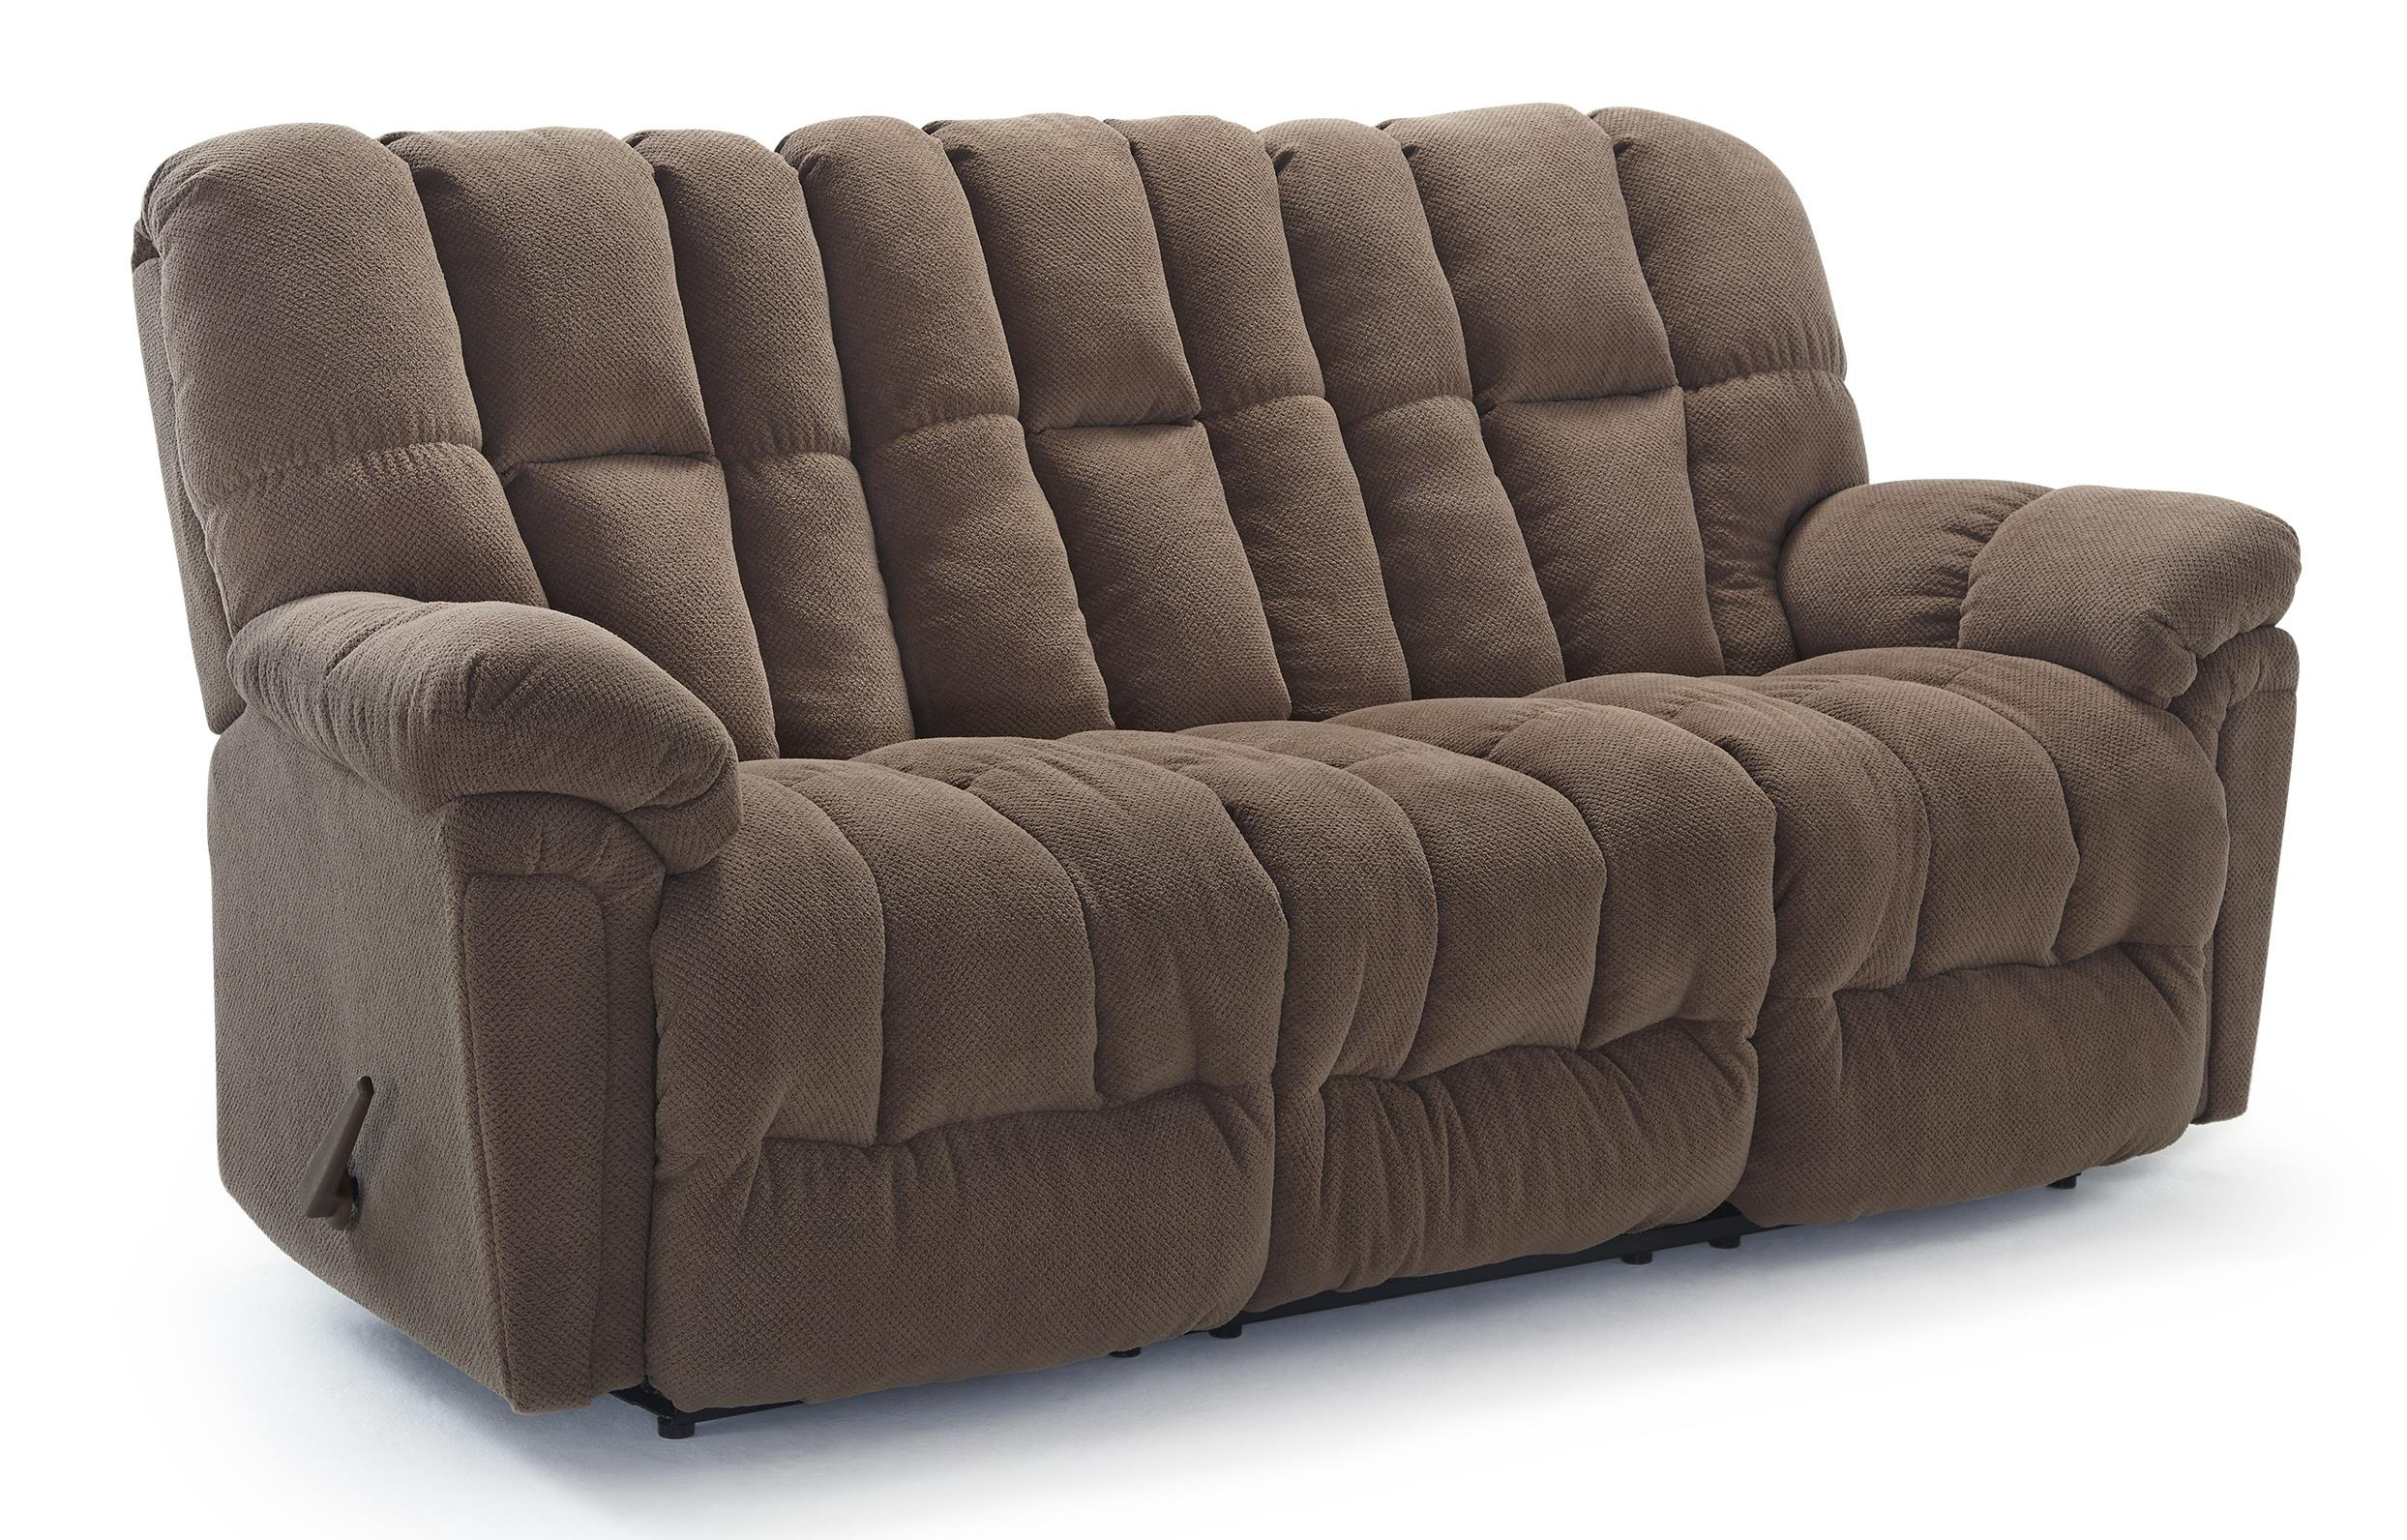 Lucas casual plush reclining sofa with full coverage for Plush sectional sofa with chaise